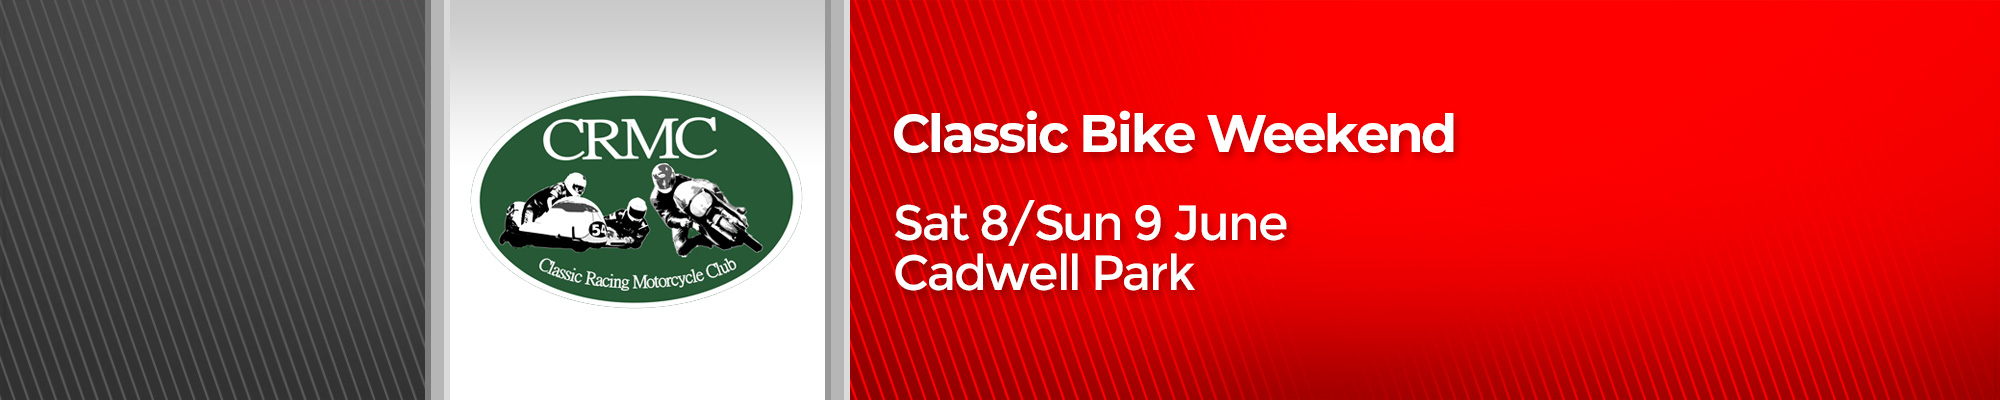 Classic Bike Weekend